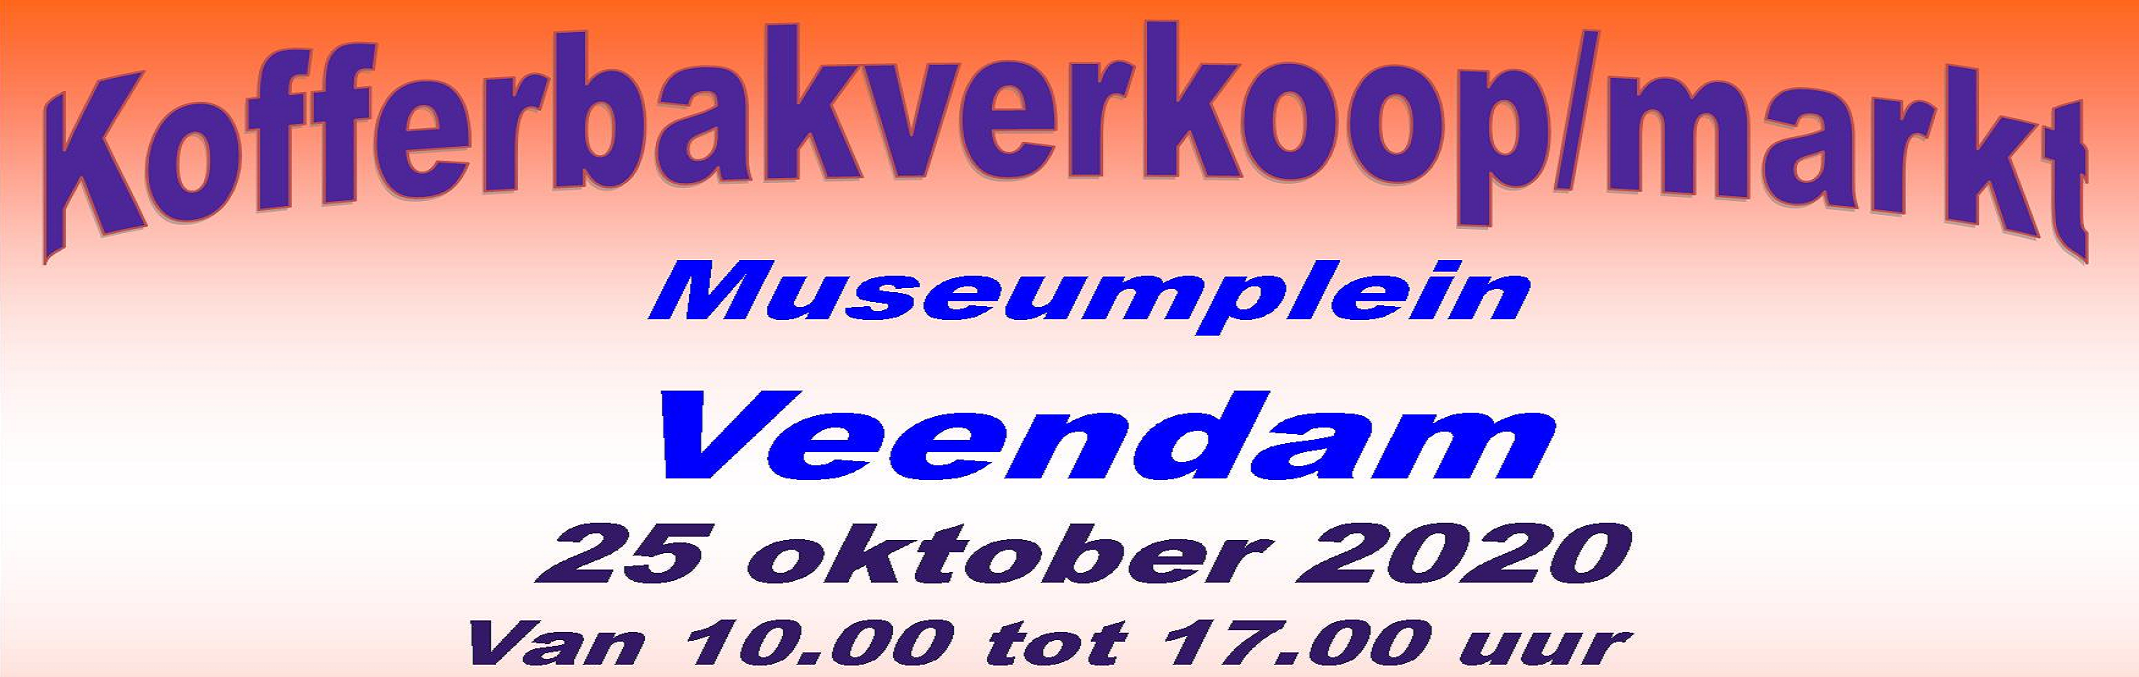 Kofferbakmarkt Veendam